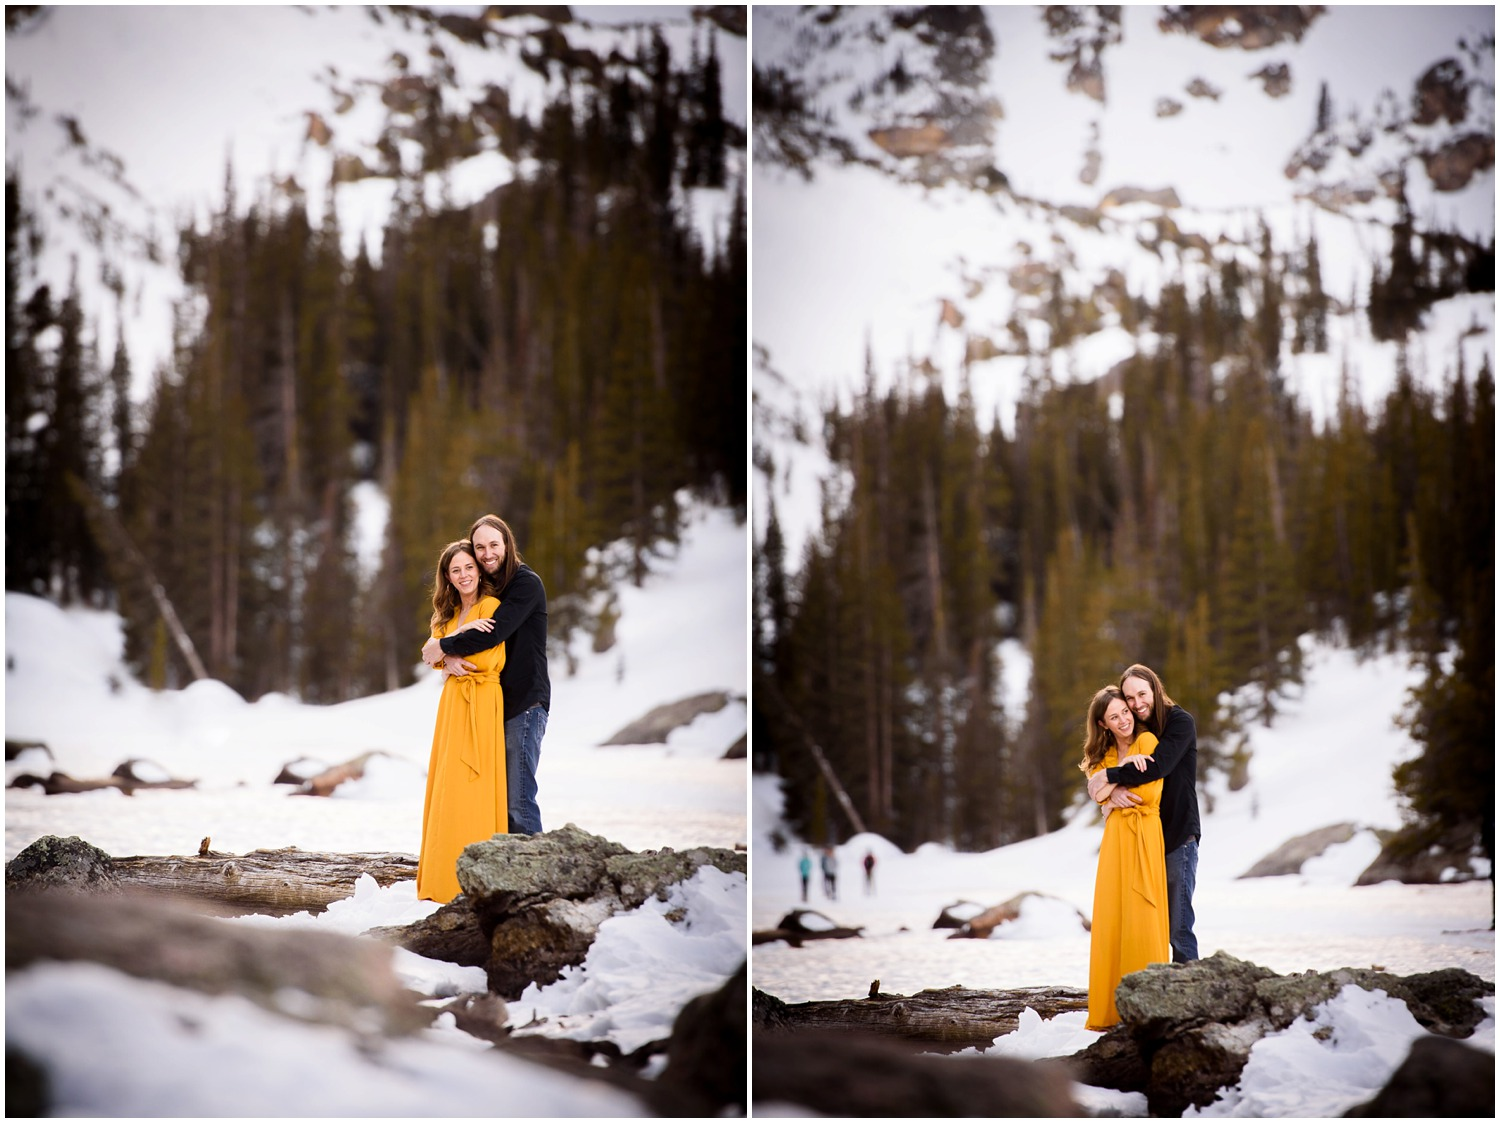 Dream-lake-colorado-engagement-photography_0031.jpg